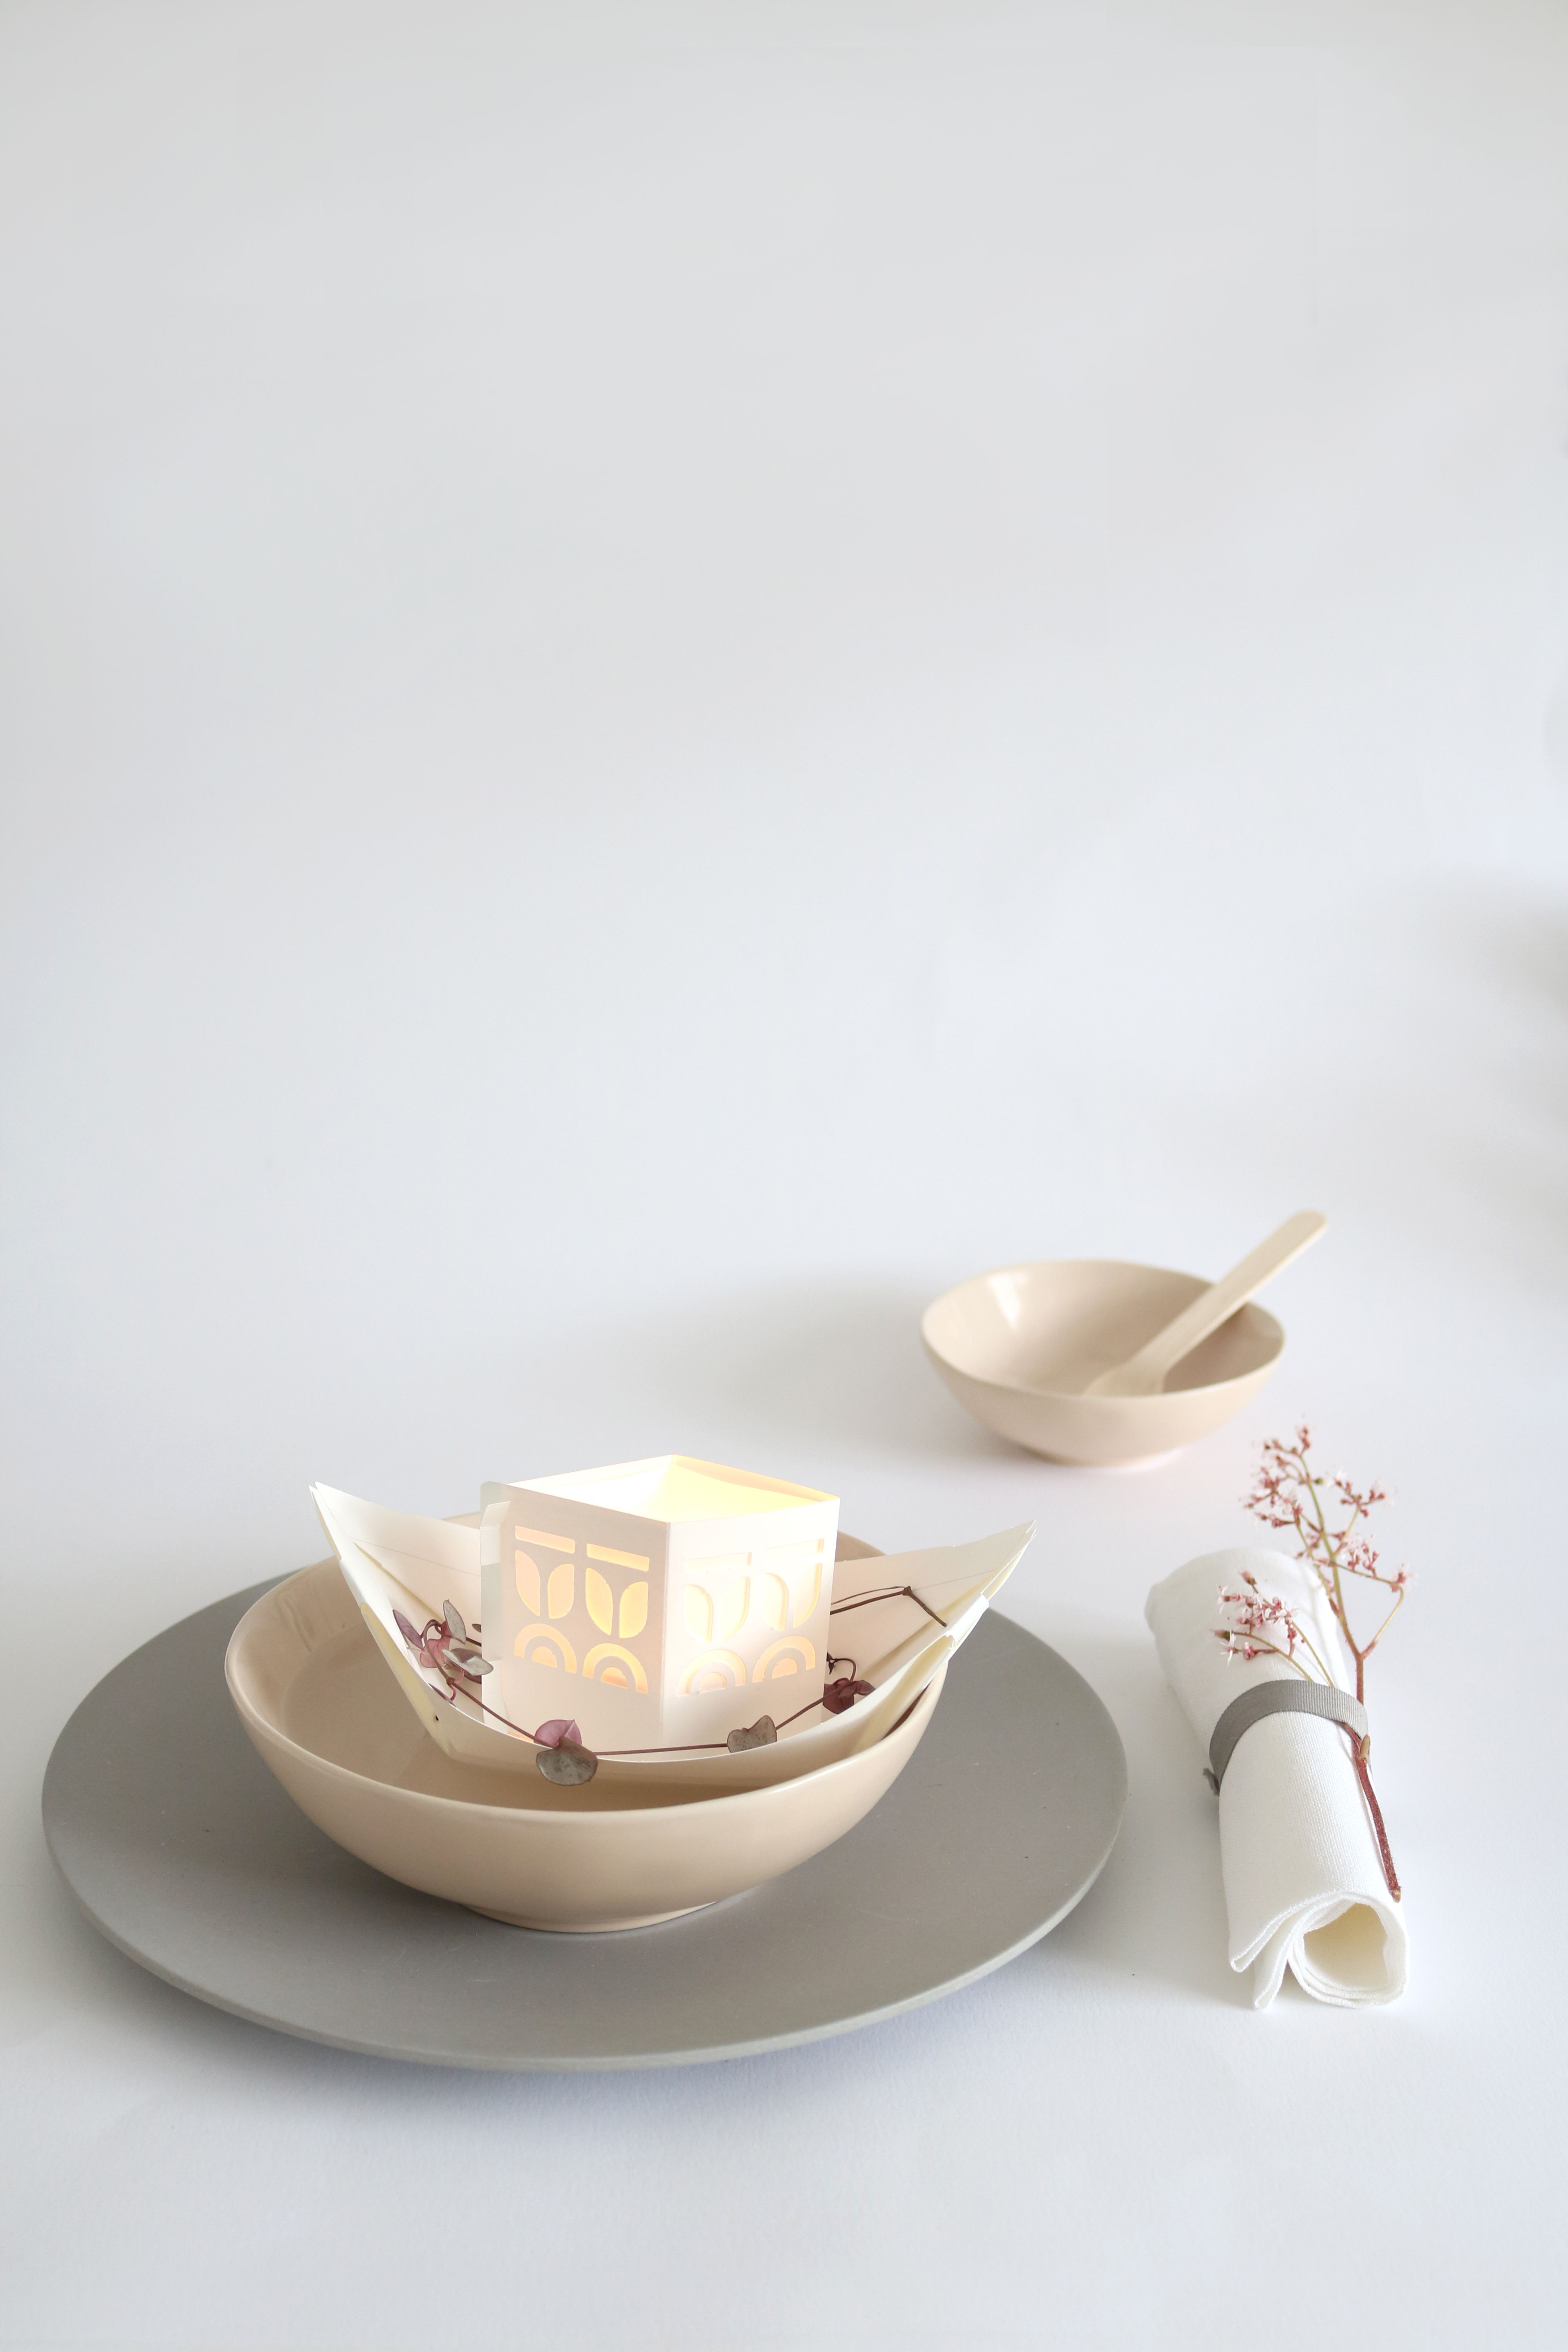 Looking for wedding table deco ideas? Rejse floating light boat with the name of your guest on it, floating on a little bowl...